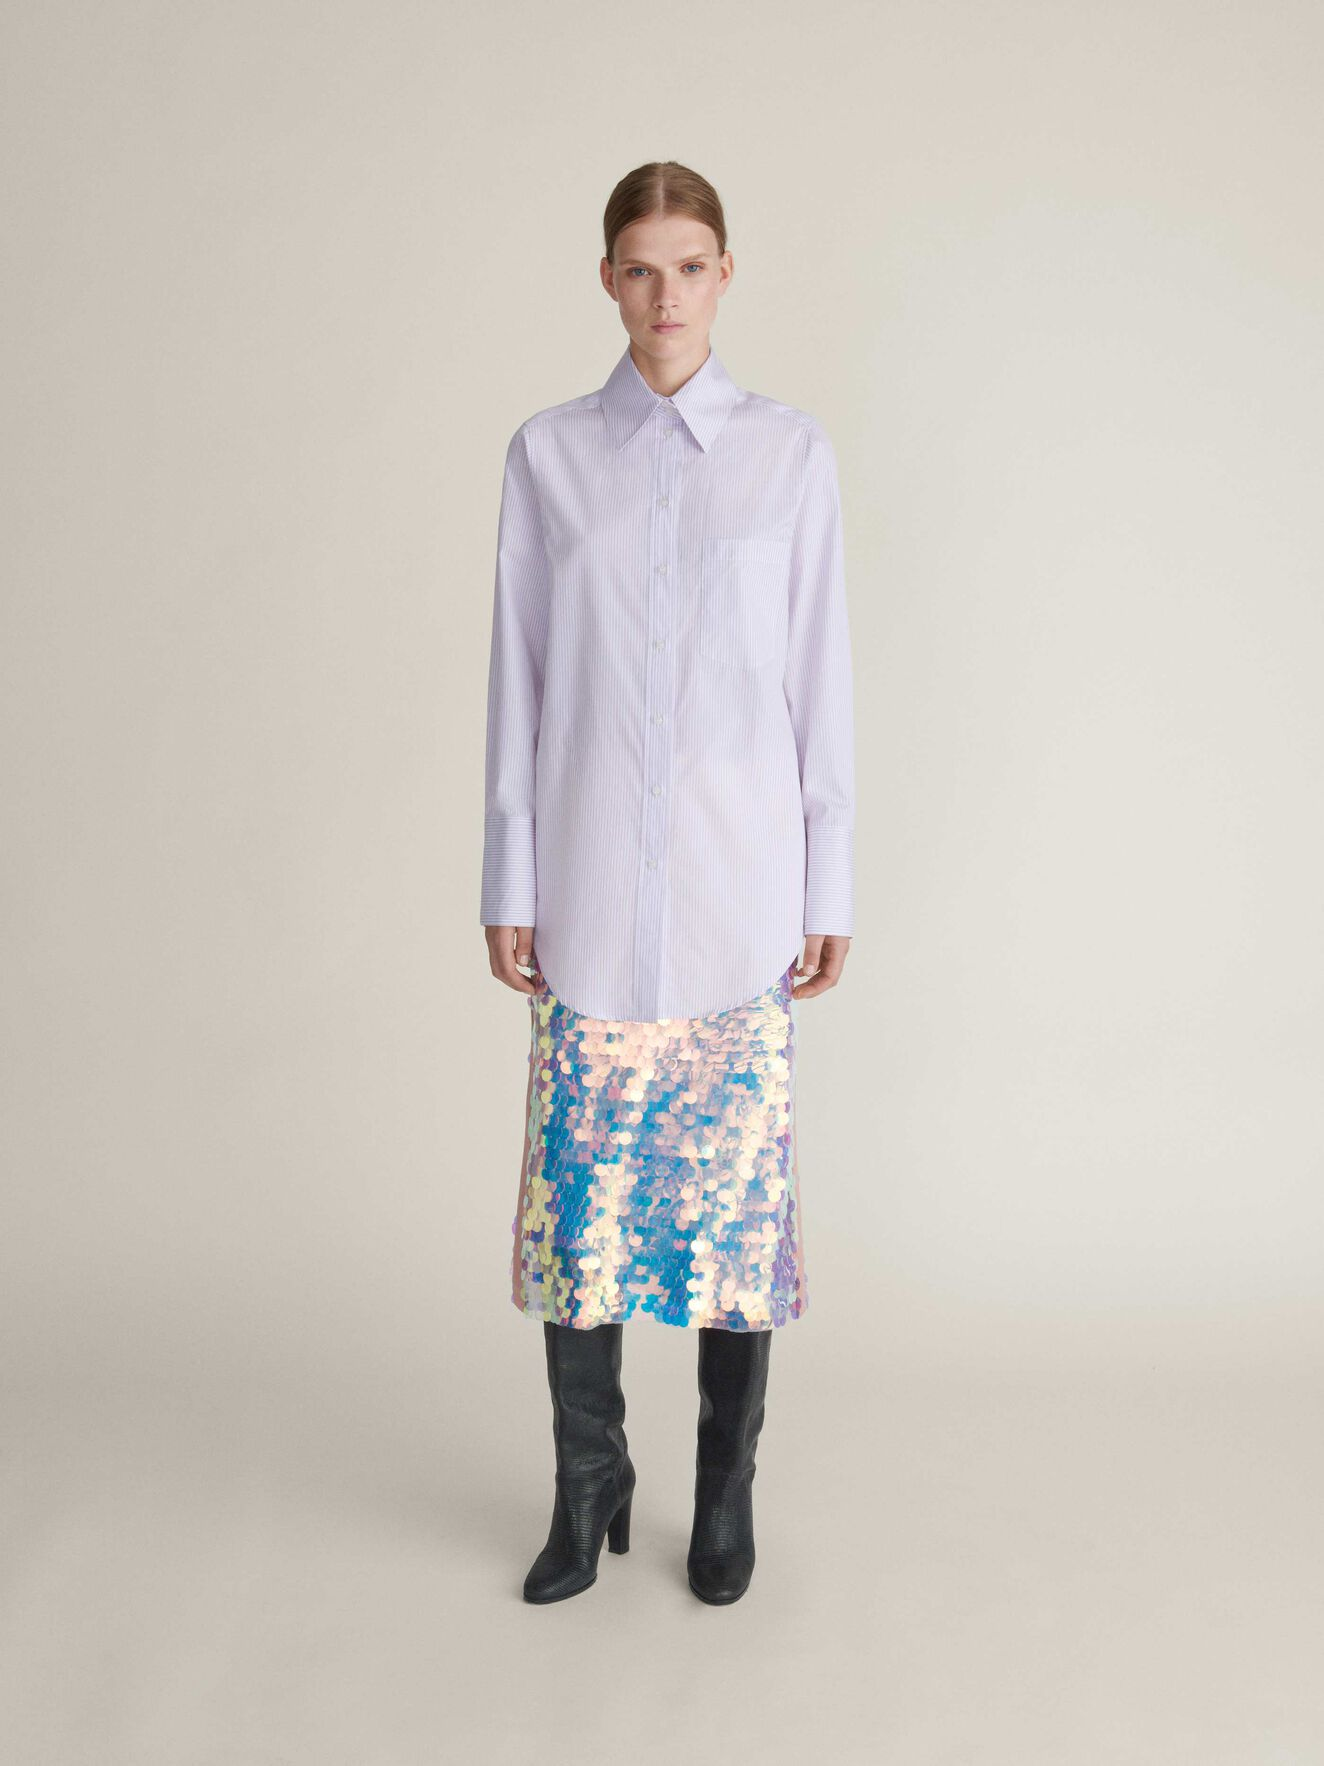 Meda Shirt in Smashing Lilac from Tiger of Sweden